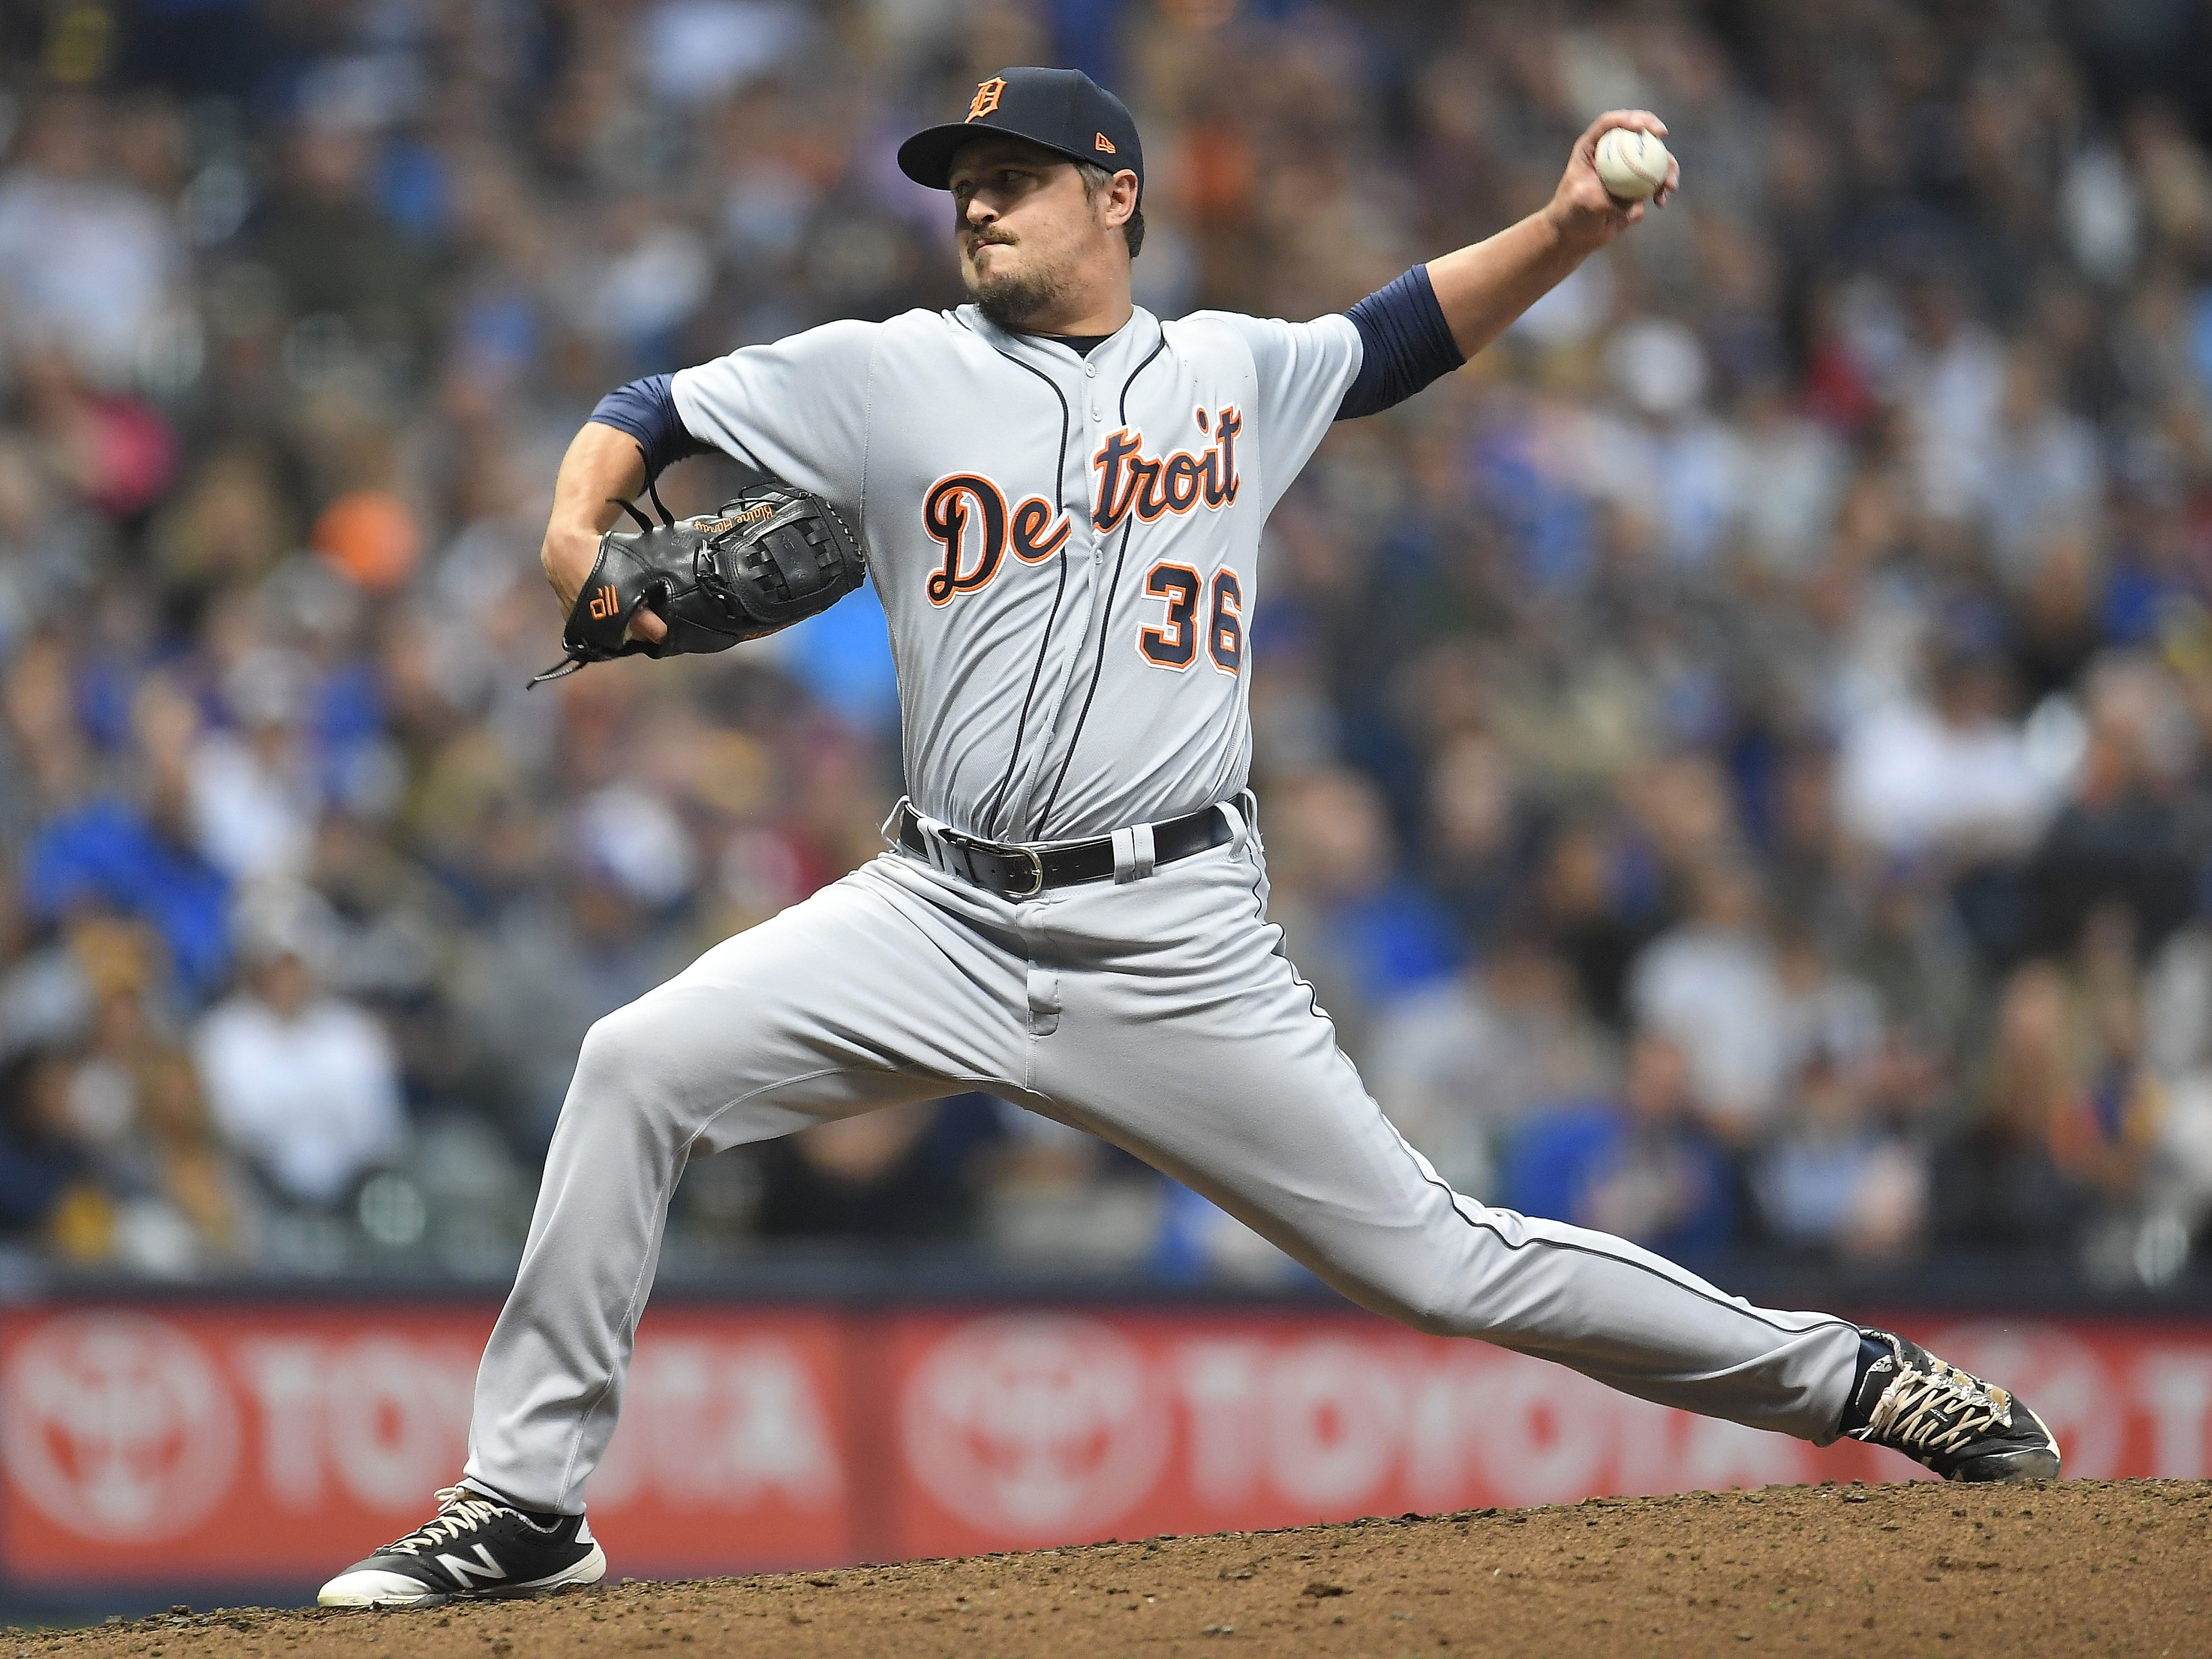 Blaine Hardy of the Detroit Tigers throws a pitch during the fifth inning against the Milwaukee Brewers at Miller Park on Sept. 28, 2018 in Milwaukee.